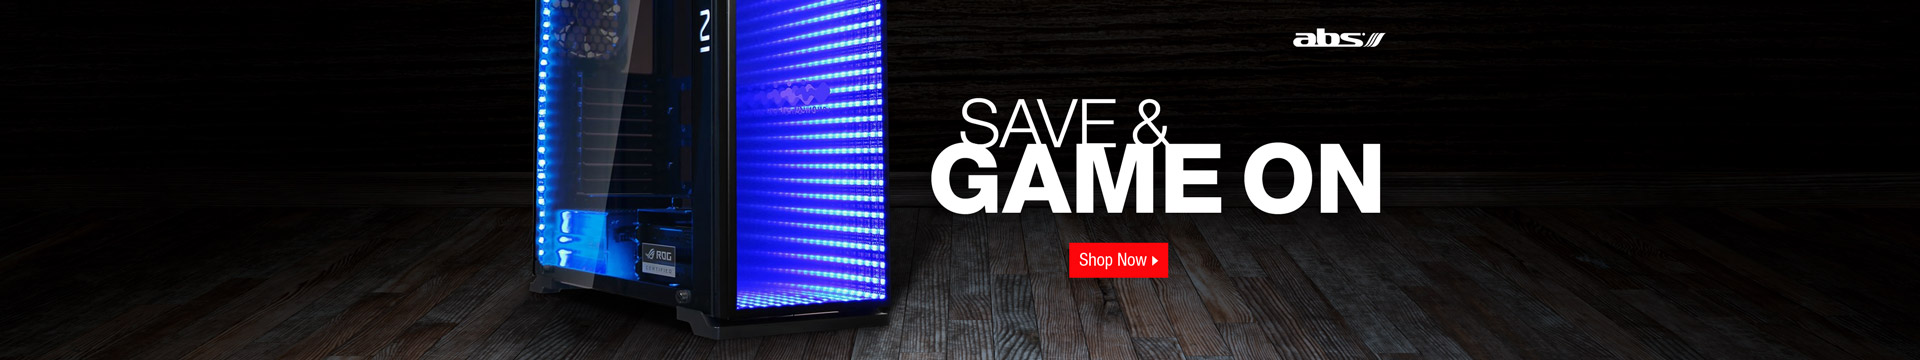 Save & Game On